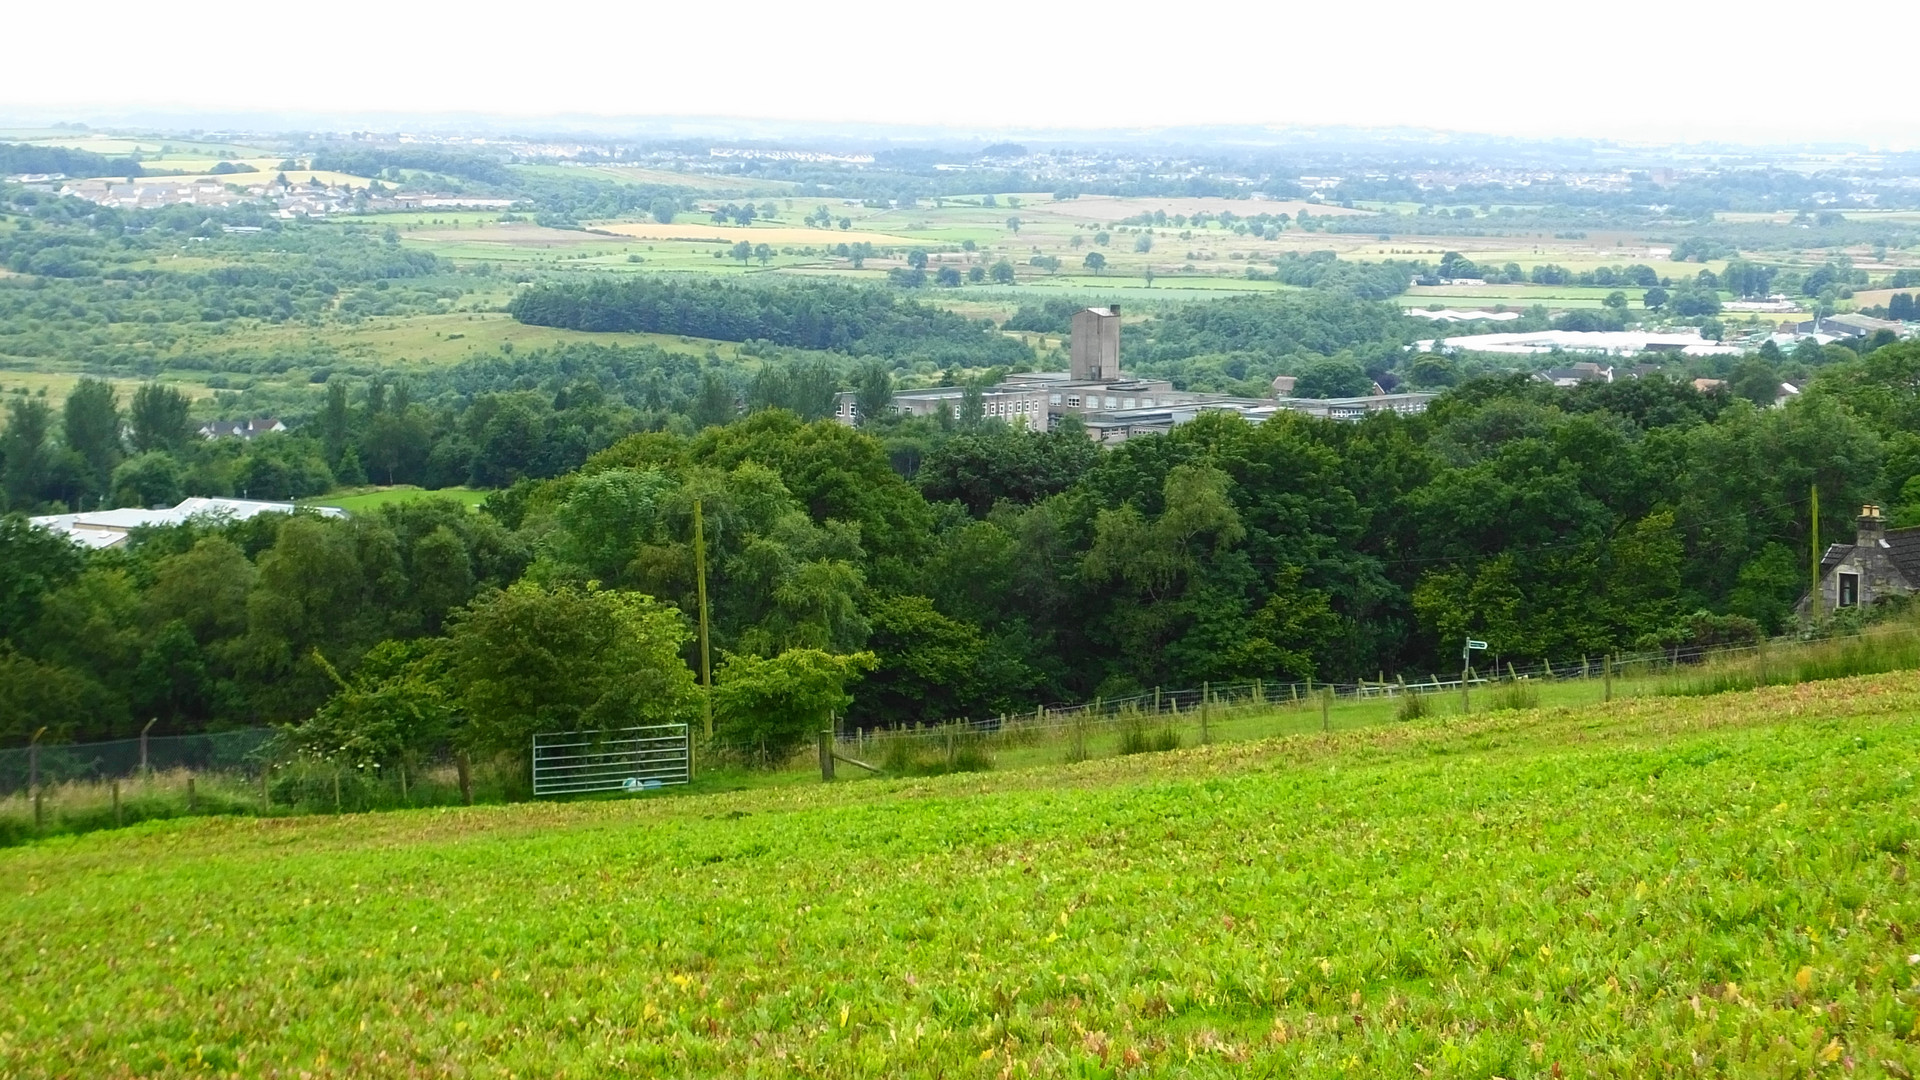 Kilsyth Academy view from the moors